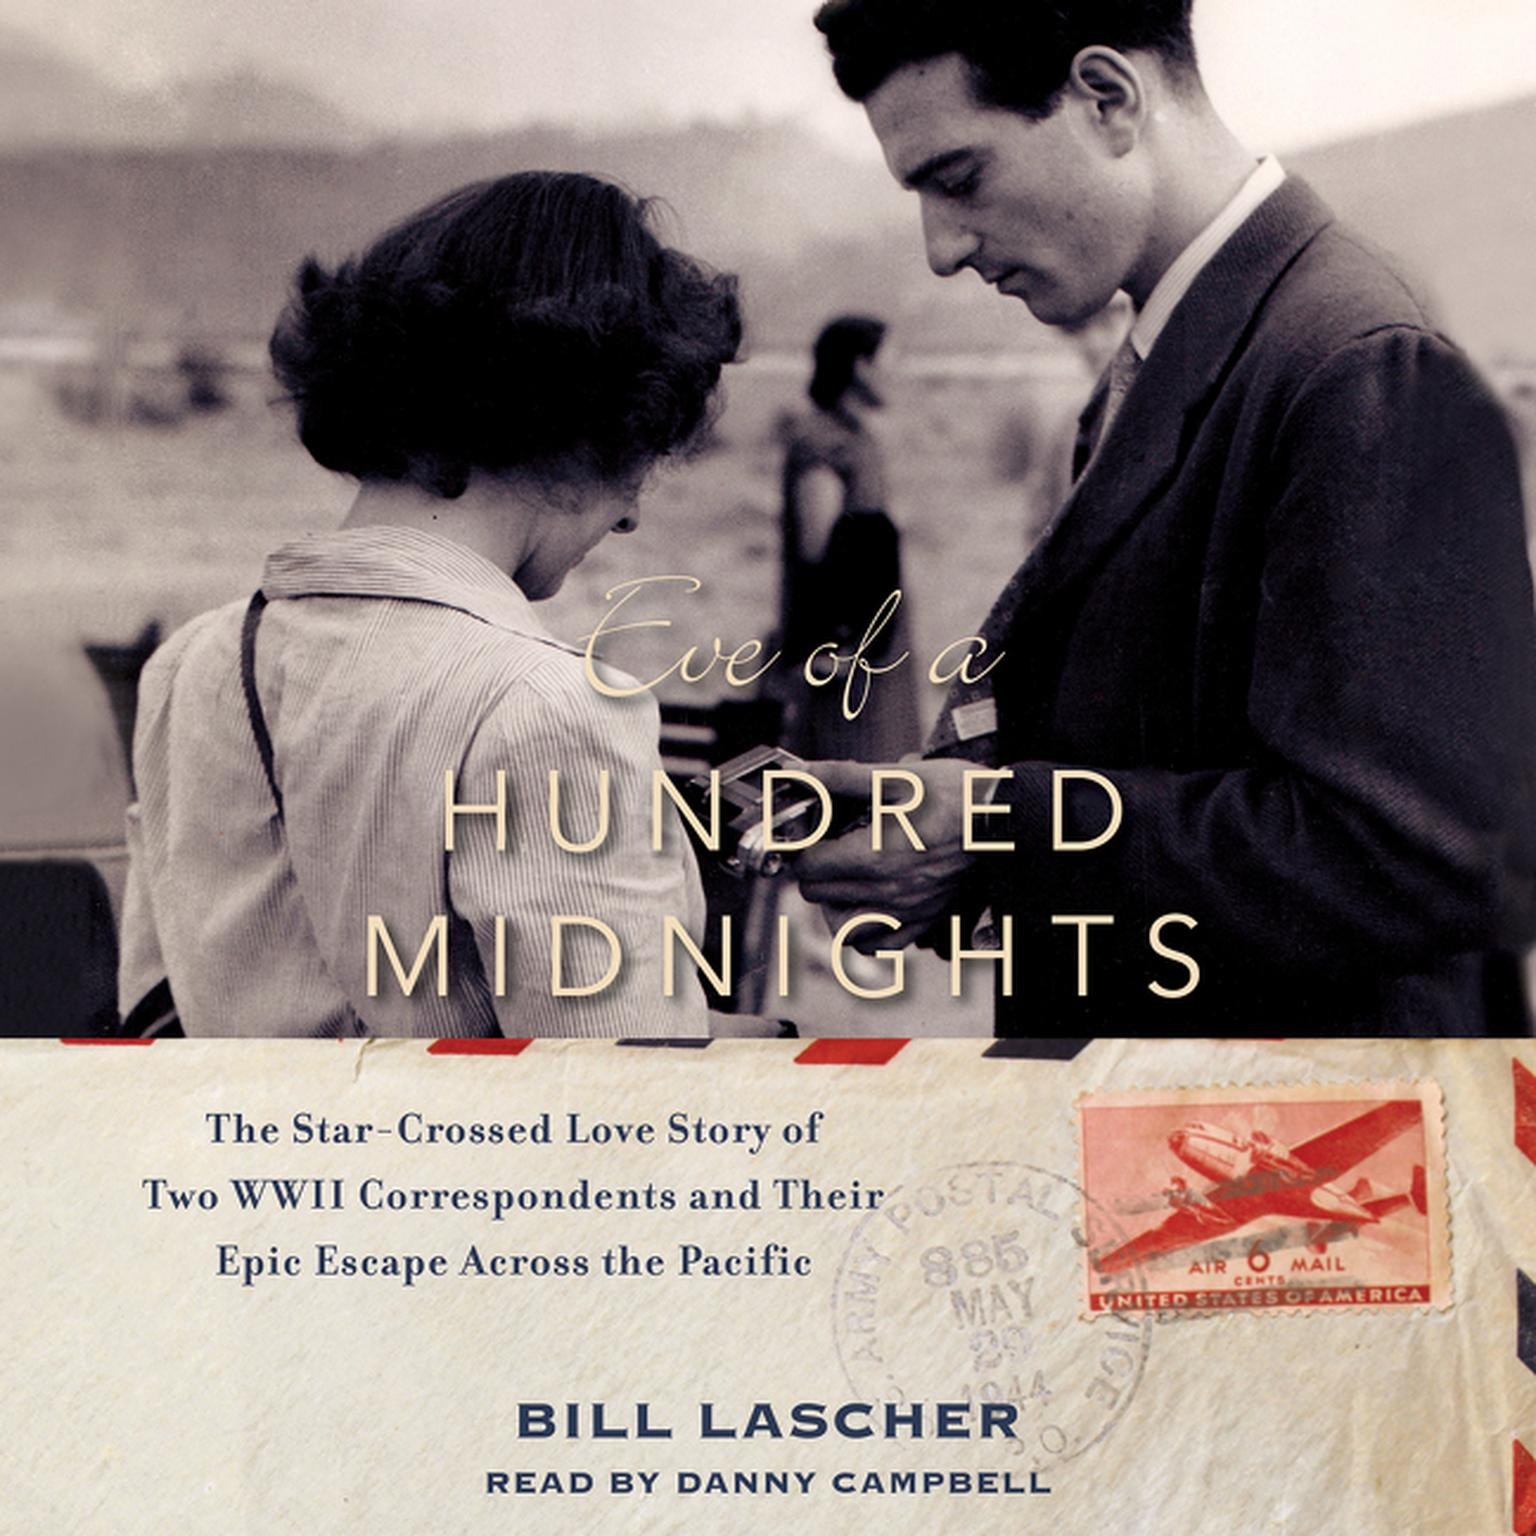 Printable Eve of a Hundred Midnights: The Star-Crossed Love Story of Two WWII Correspondents and their Epic Escape Across the Pacific Audiobook Cover Art